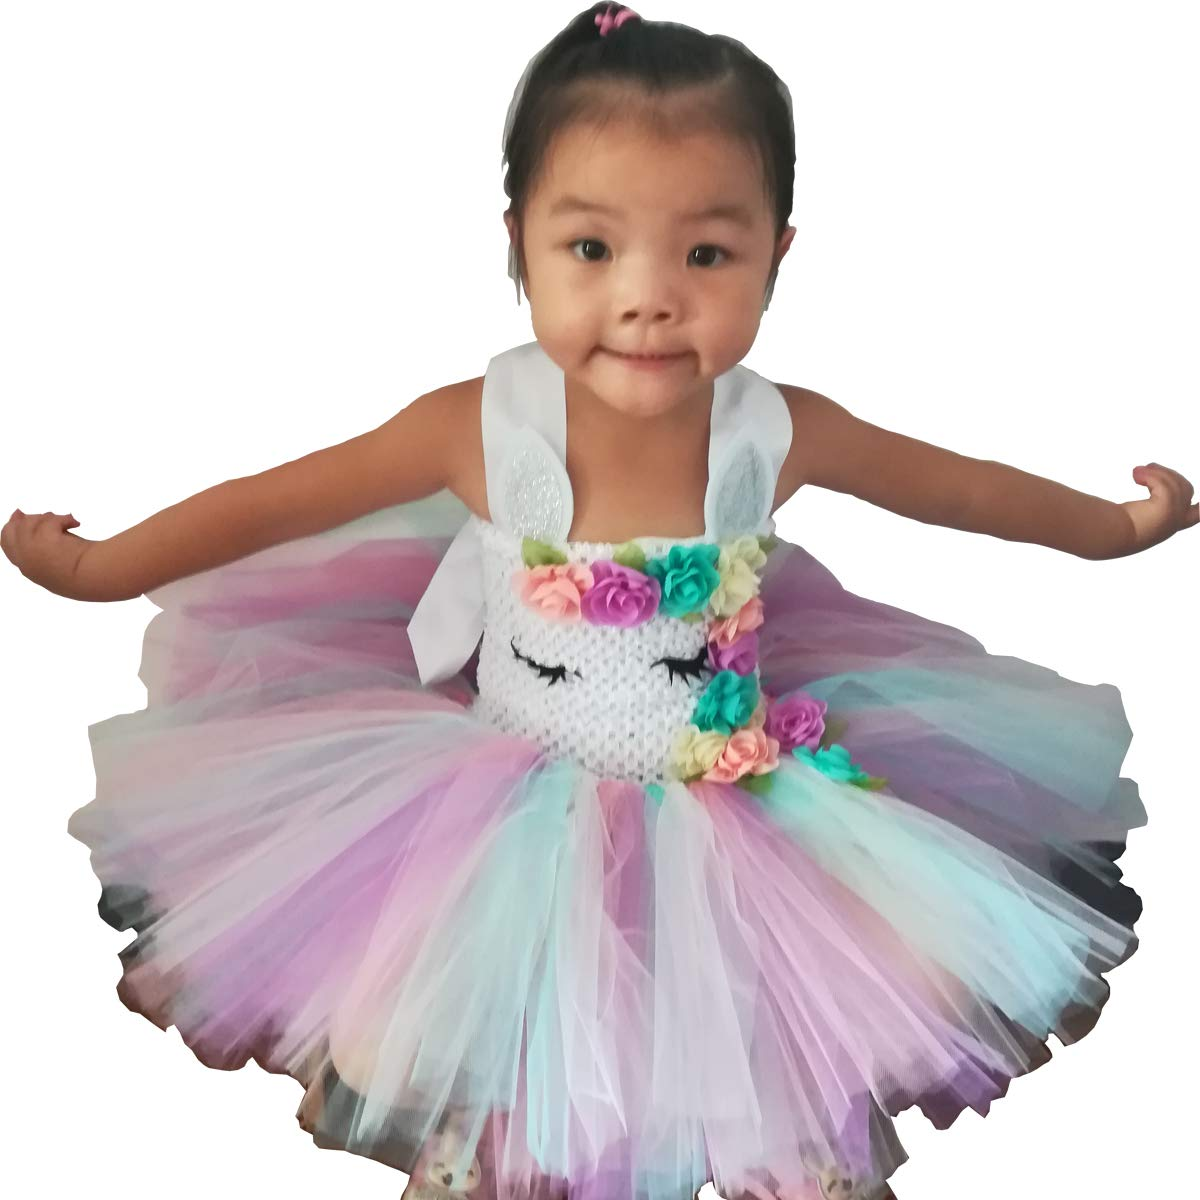 NEW 2-piece Pink skirted leotard Tutu outfit w// roses Dance Costume Child sz Med